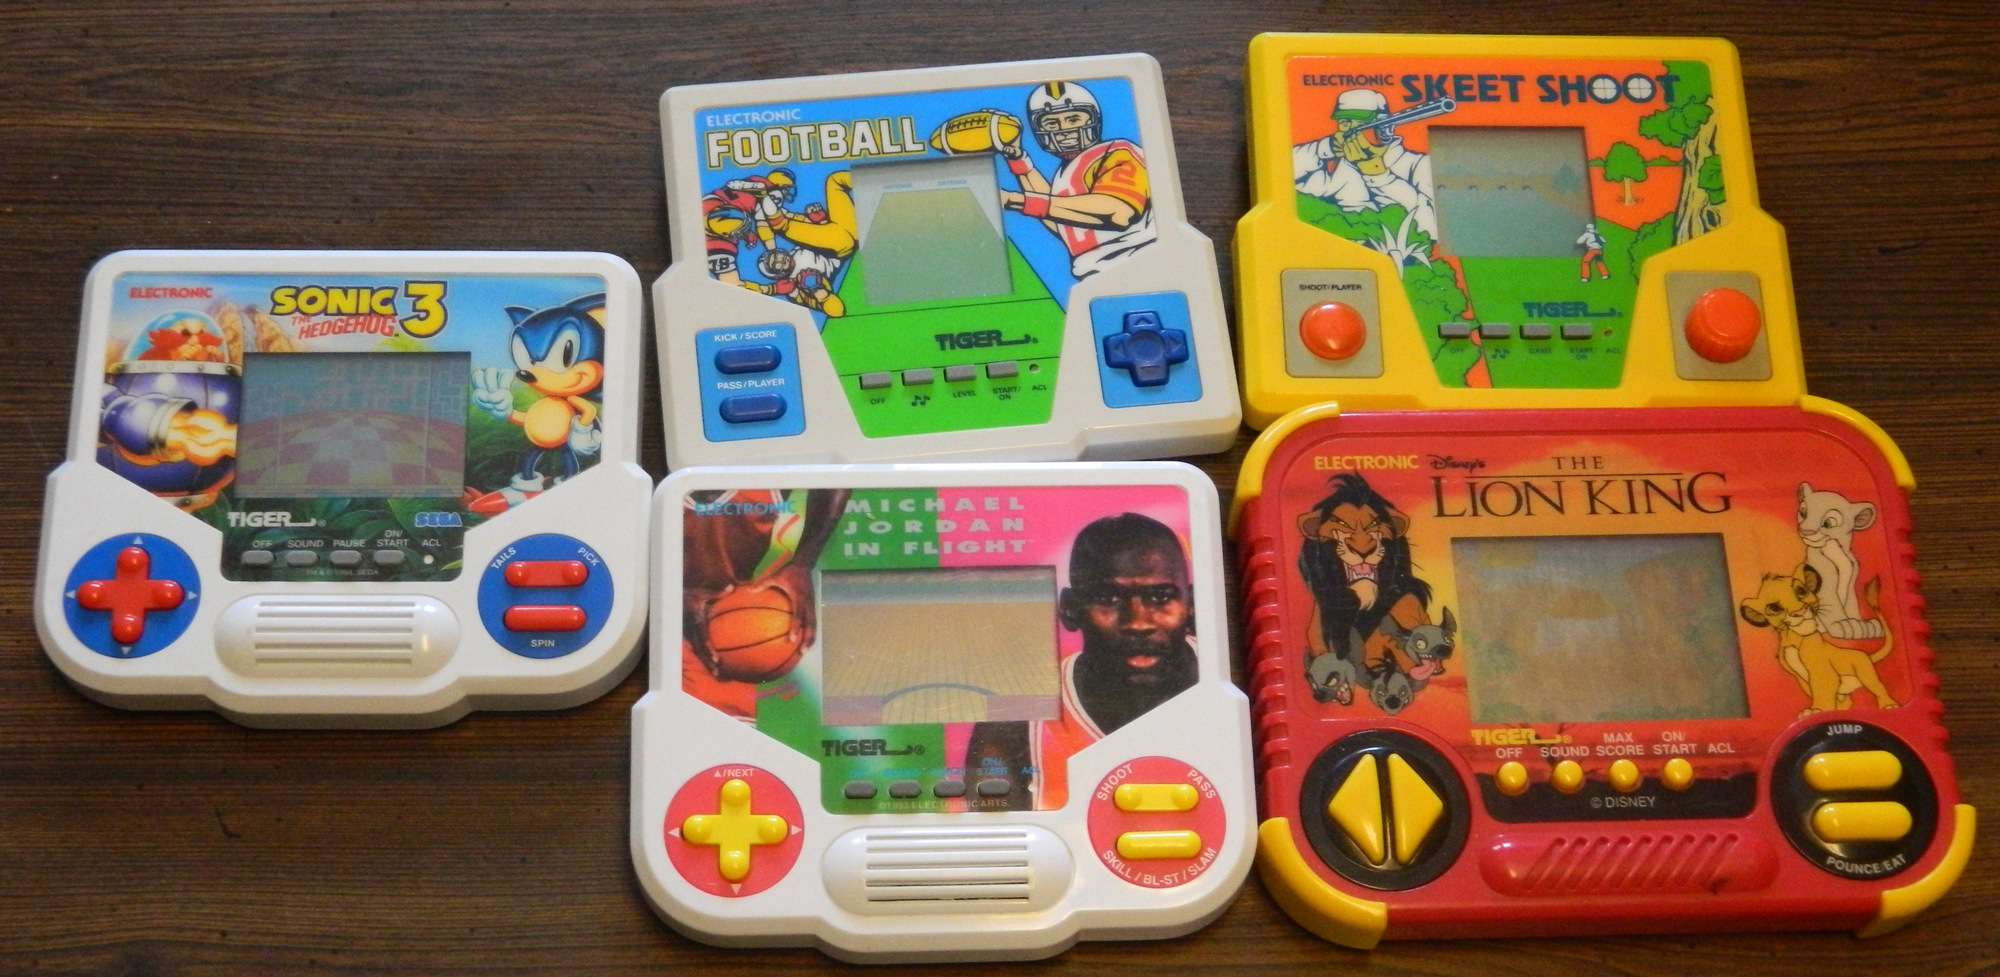 Tiger Electronics Handhelds